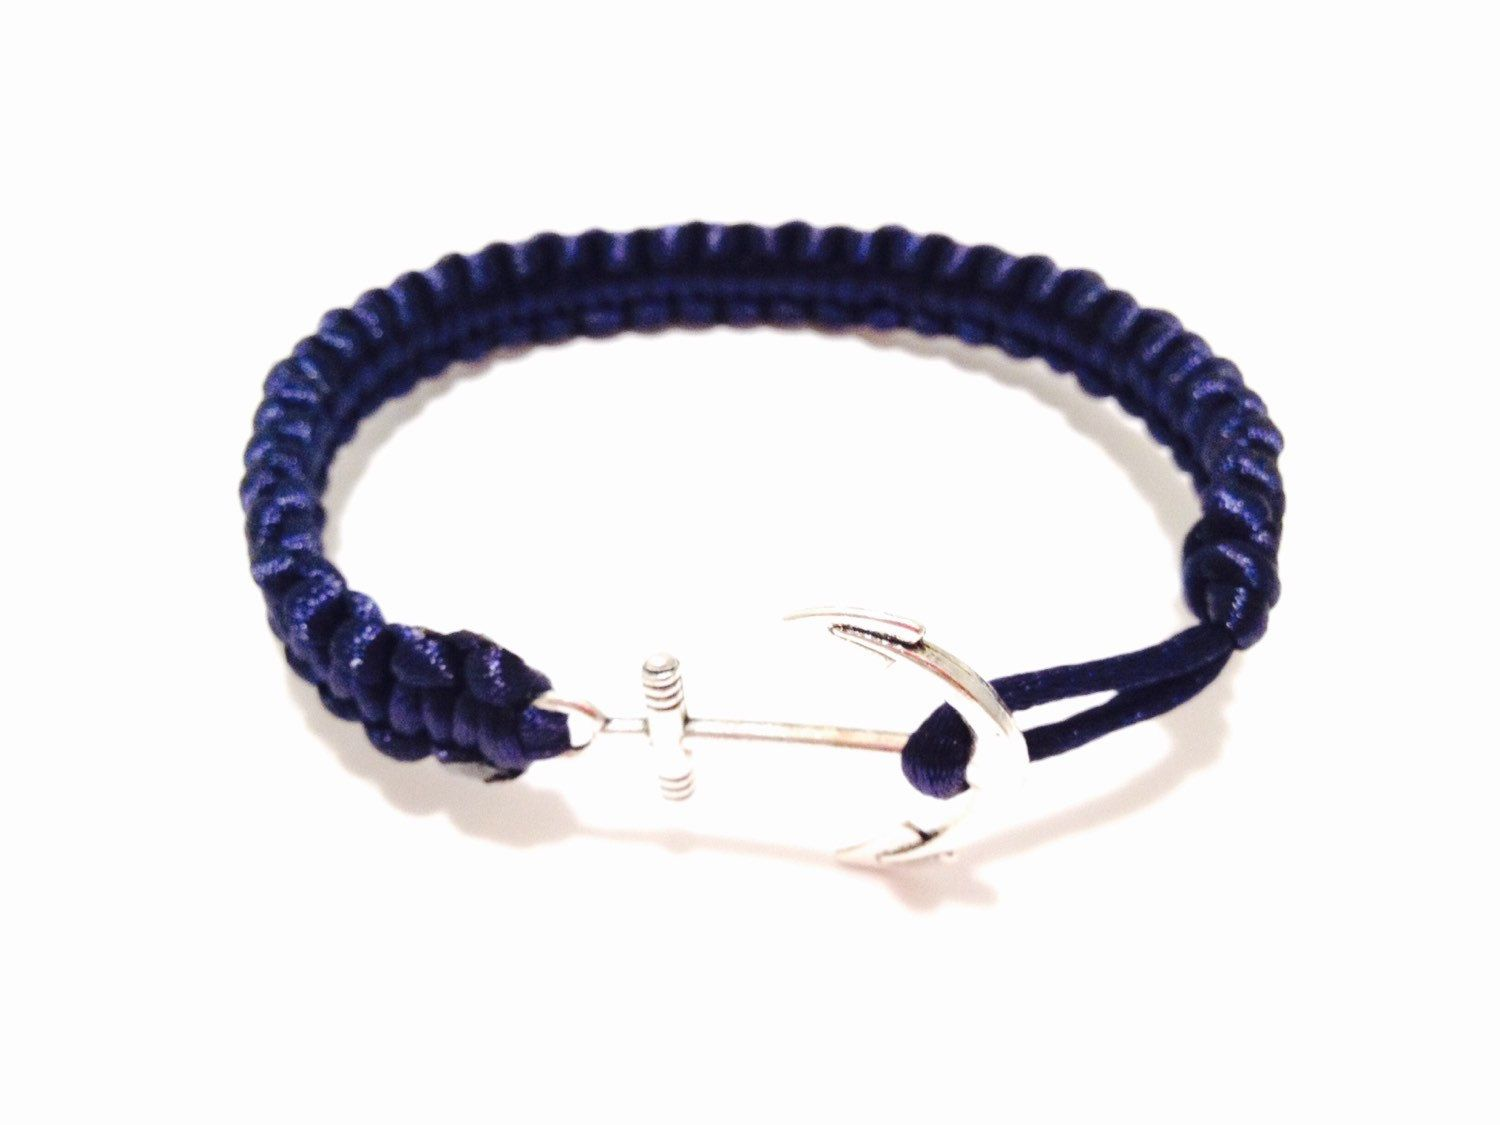 jewelry ropes womens designer in boutique gold products new just bracelet the camden navy online blue